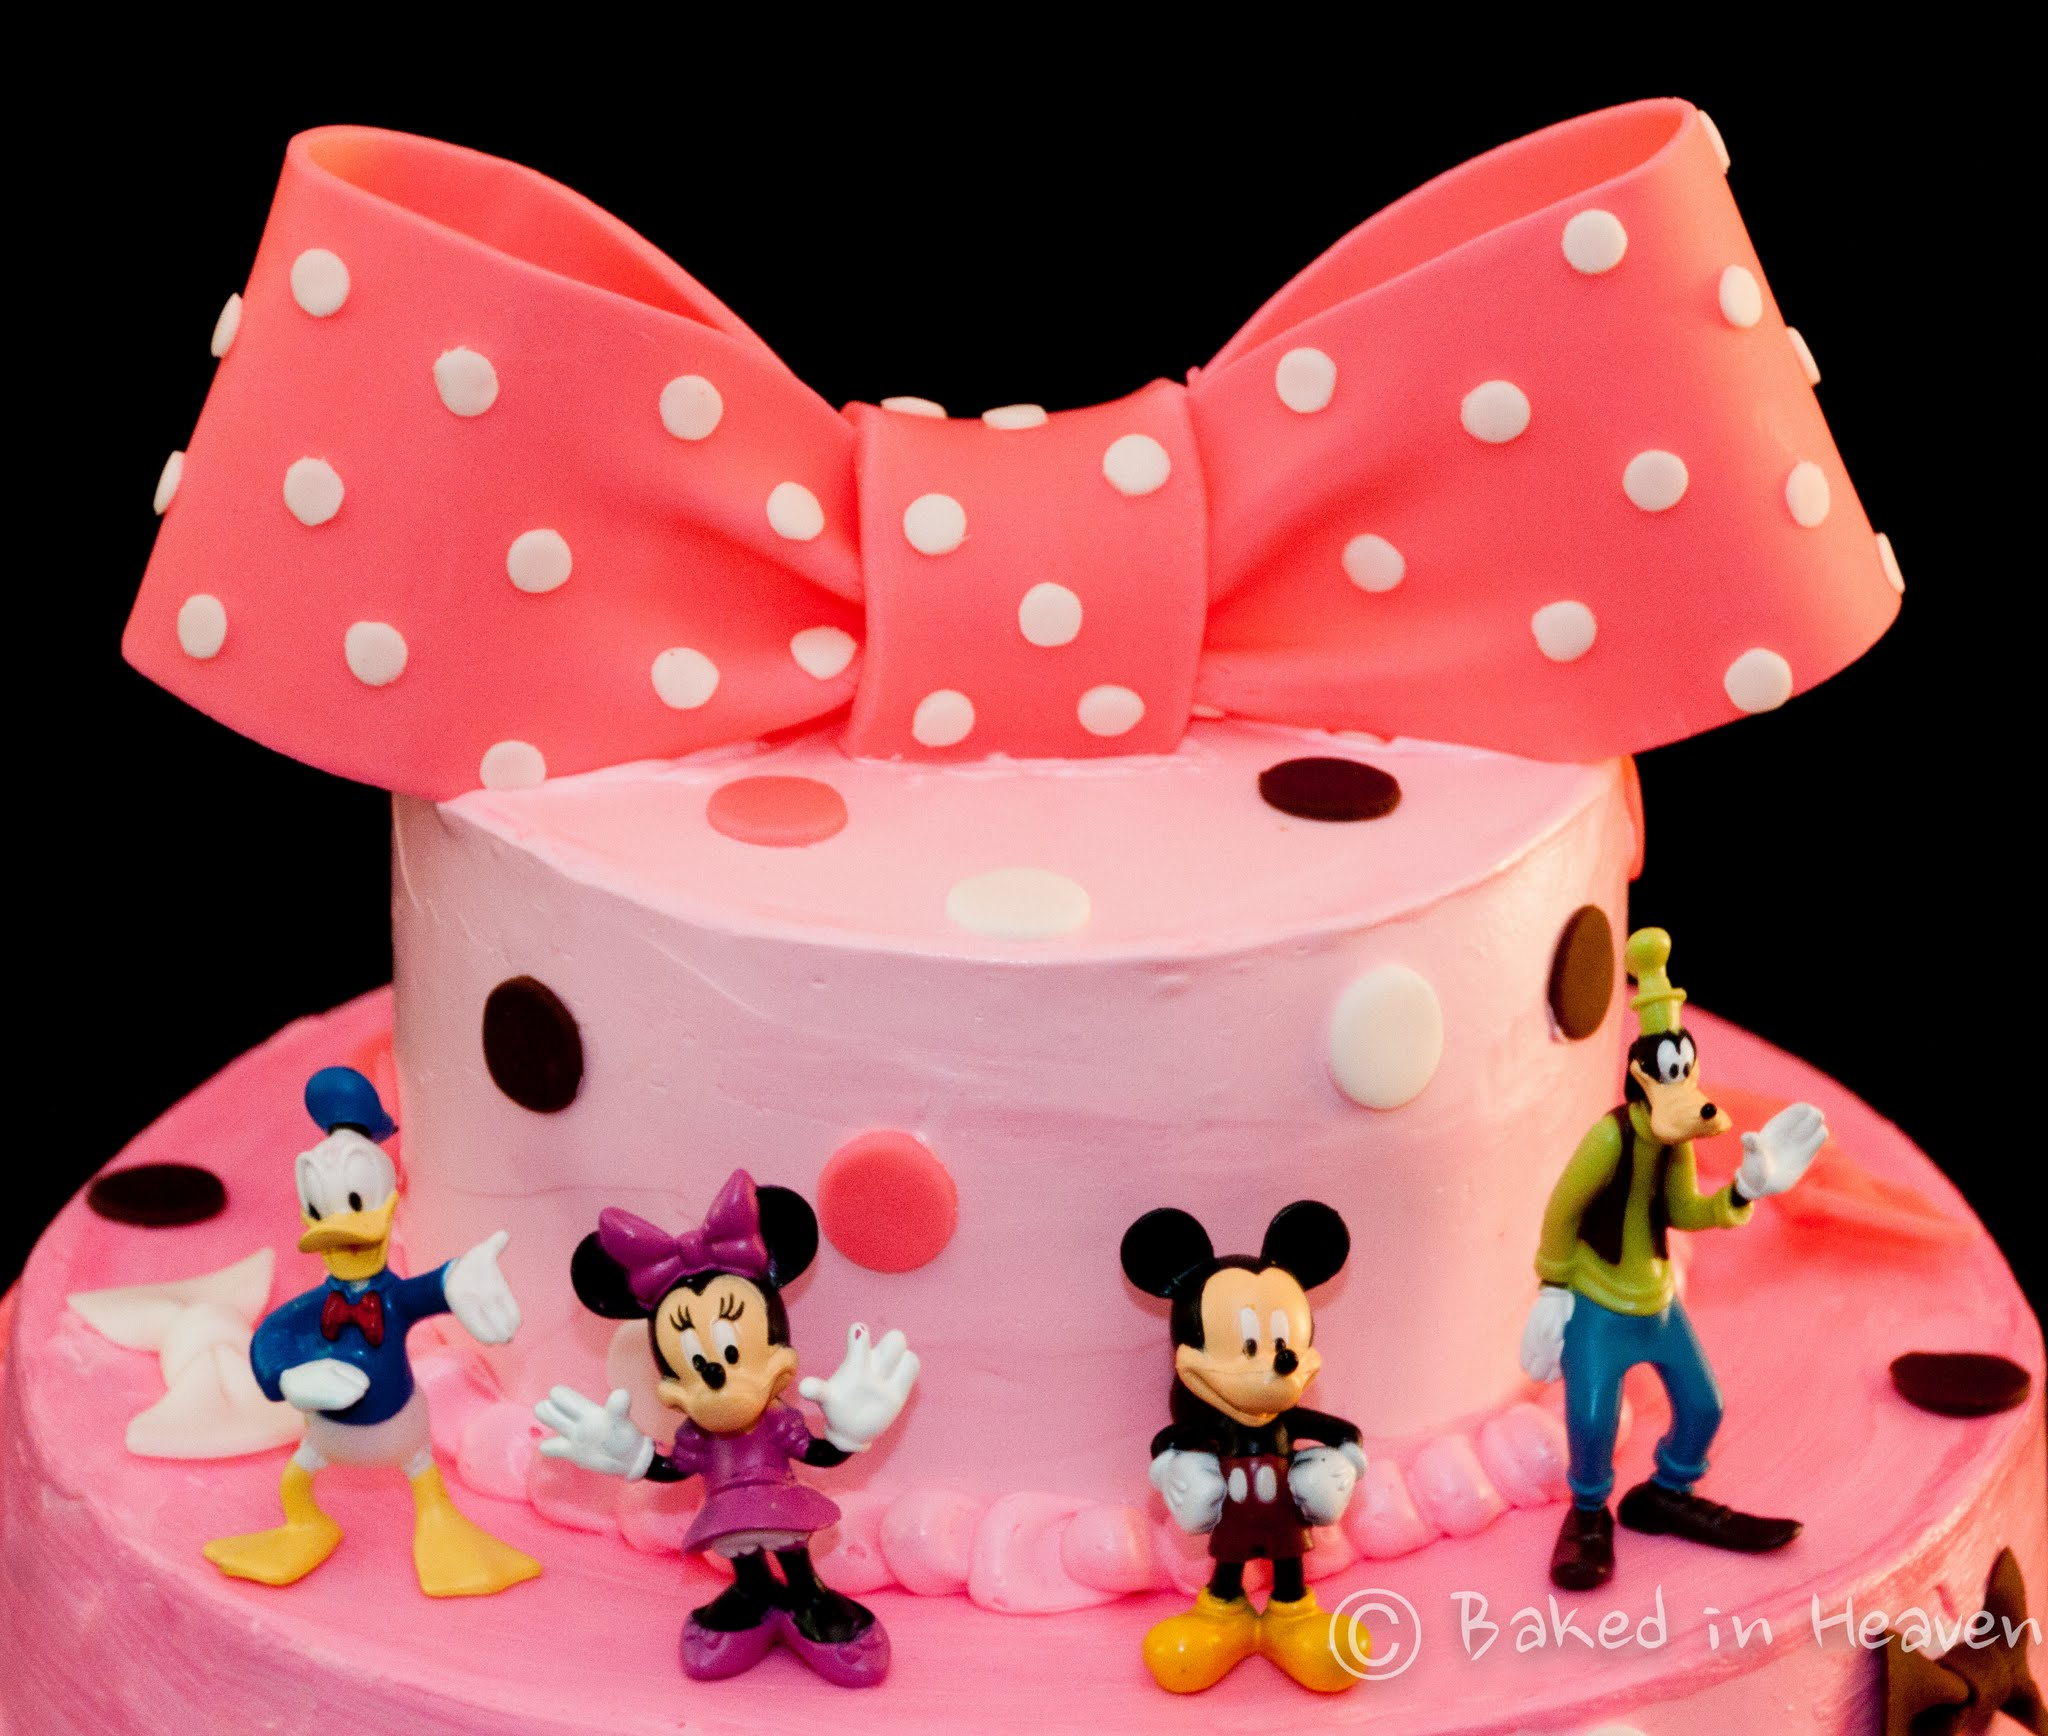 Minnie Mouse And Friends Baked In Heaven